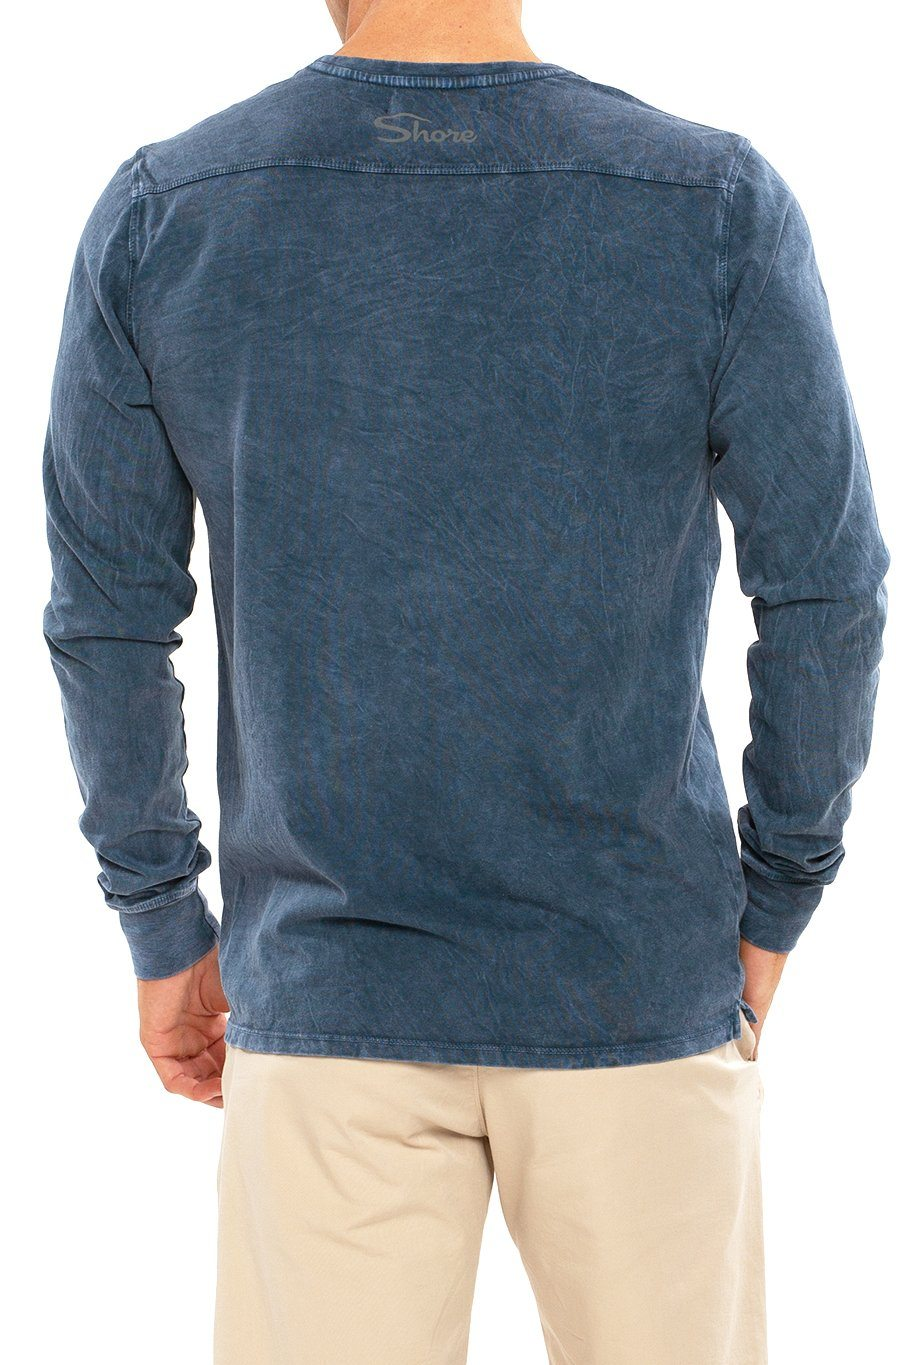 Long Sleeve Crew Tee - Navy Mineral - Shore